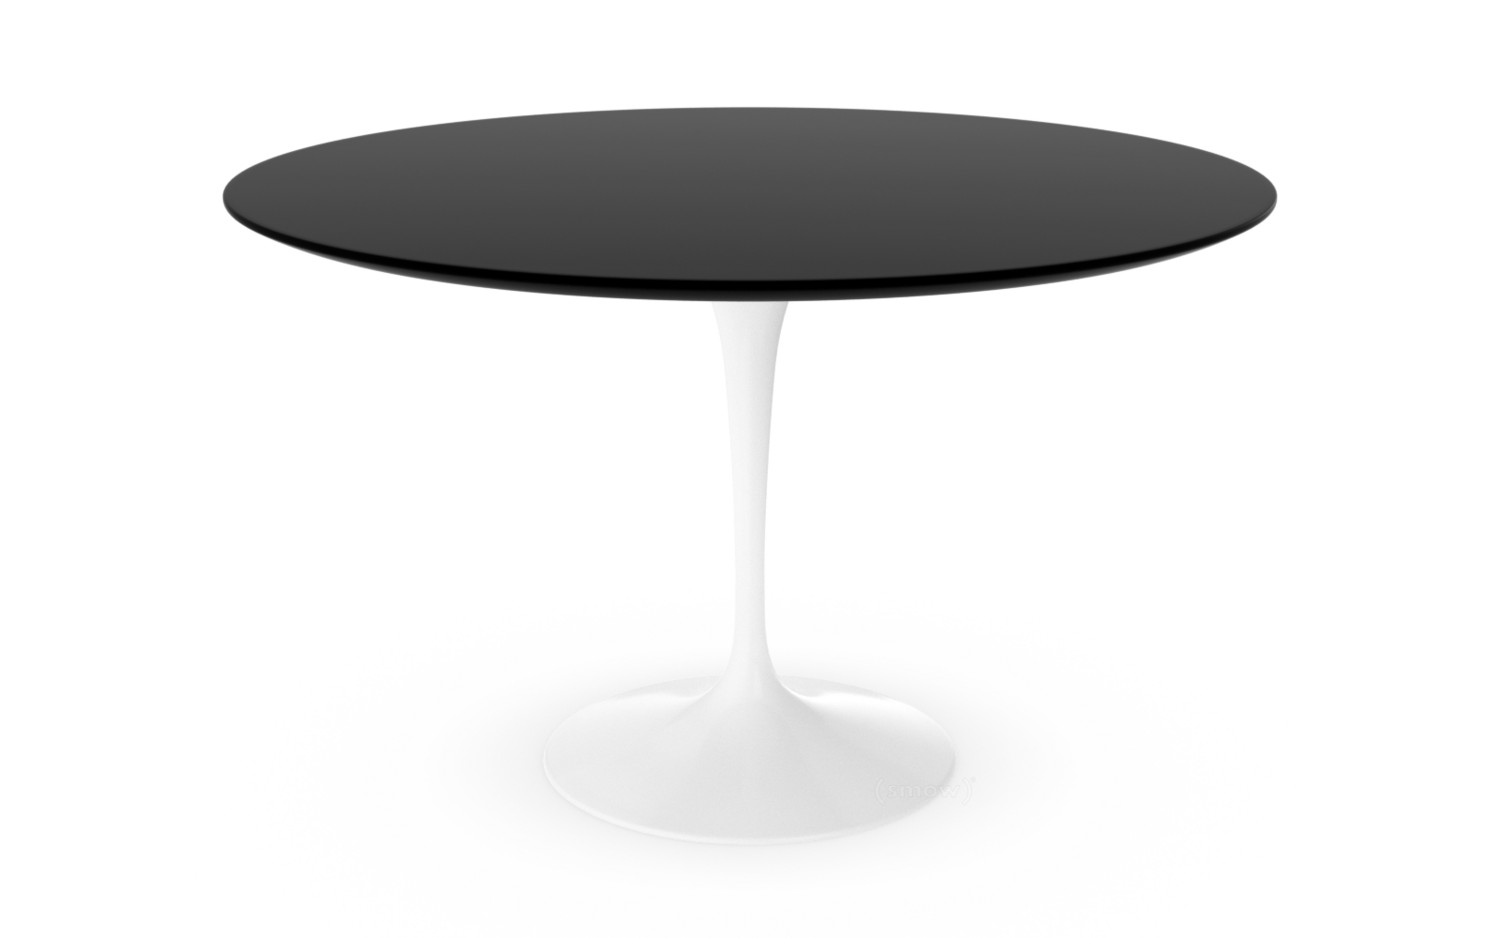 Knoll International Saarinen Round Dining Table Cm White - Saarinen table white laminate